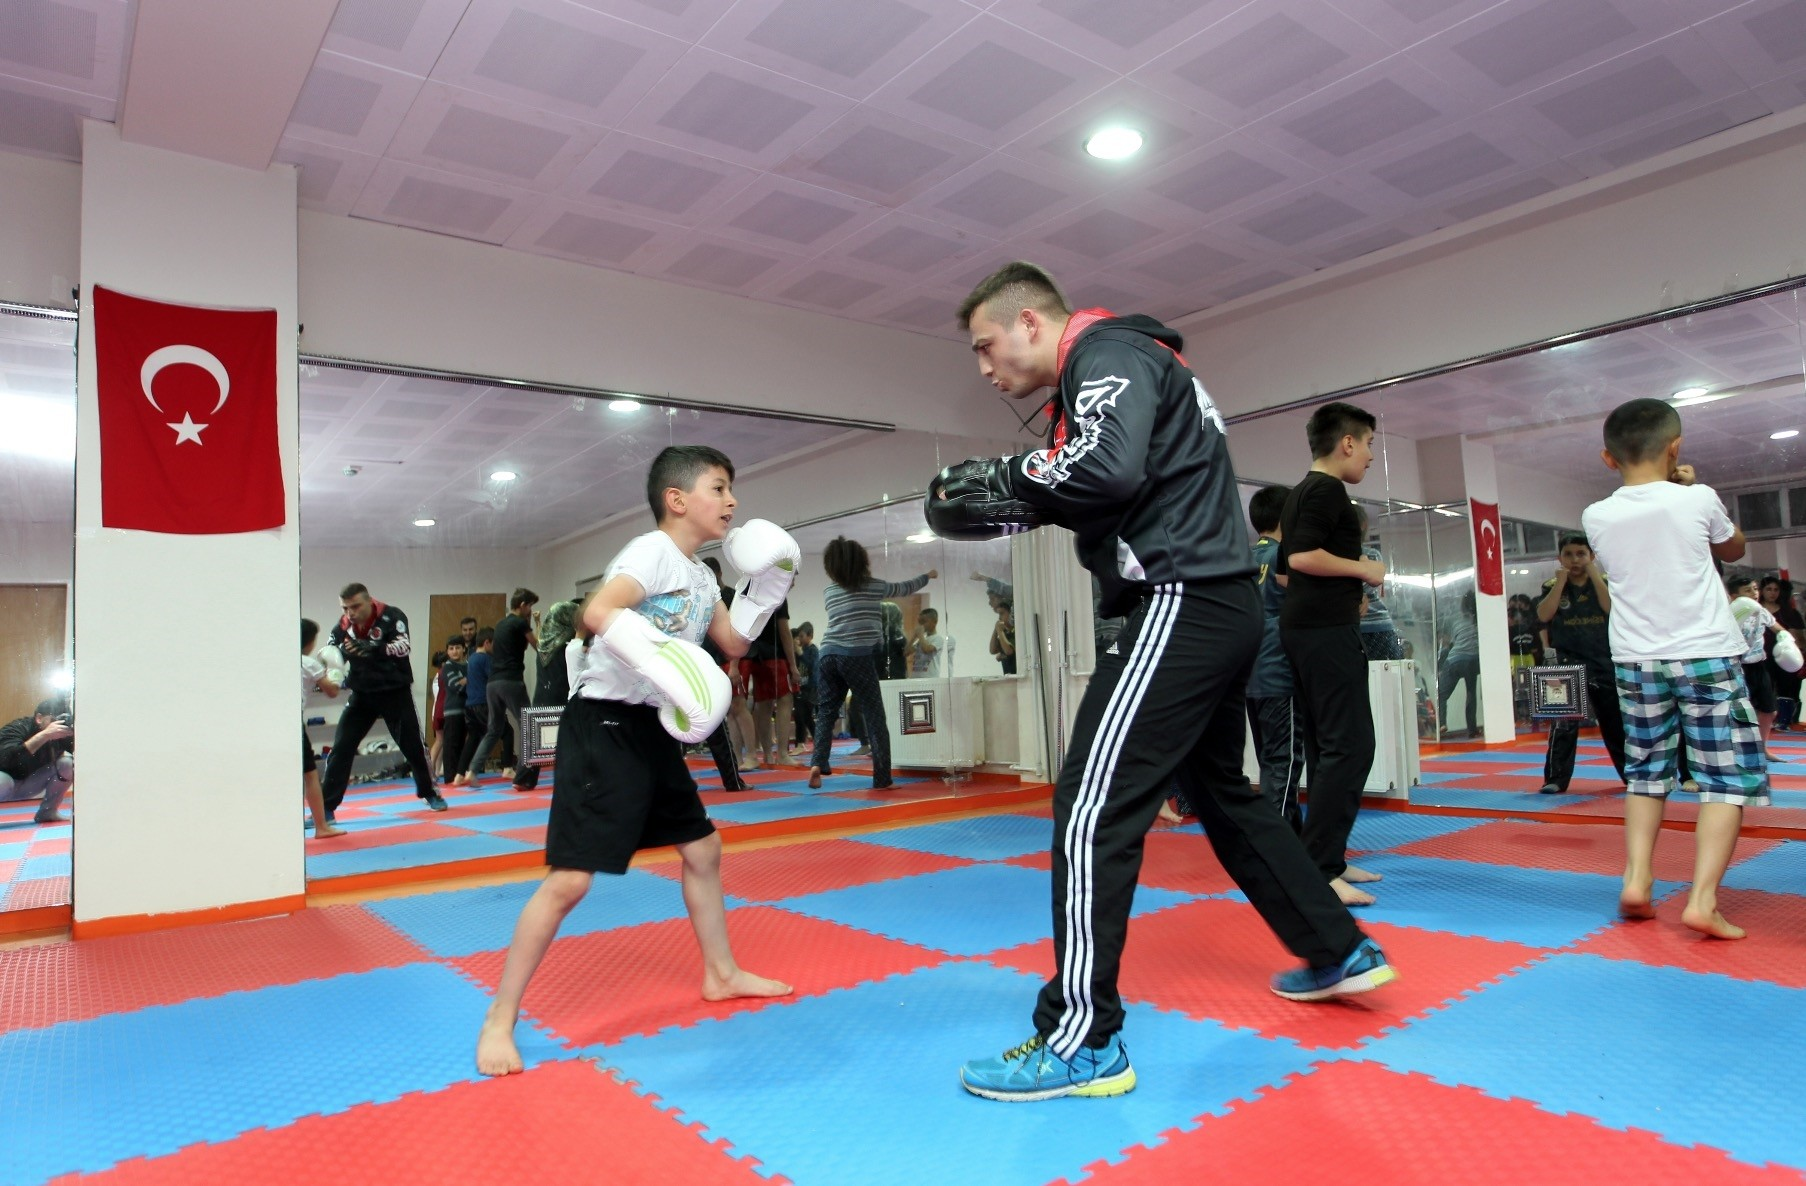 u00dcnal Au015fu0131k teaches a student Muay Thai. He is one of four officers devoting their days off to children in the city of Hakkari.